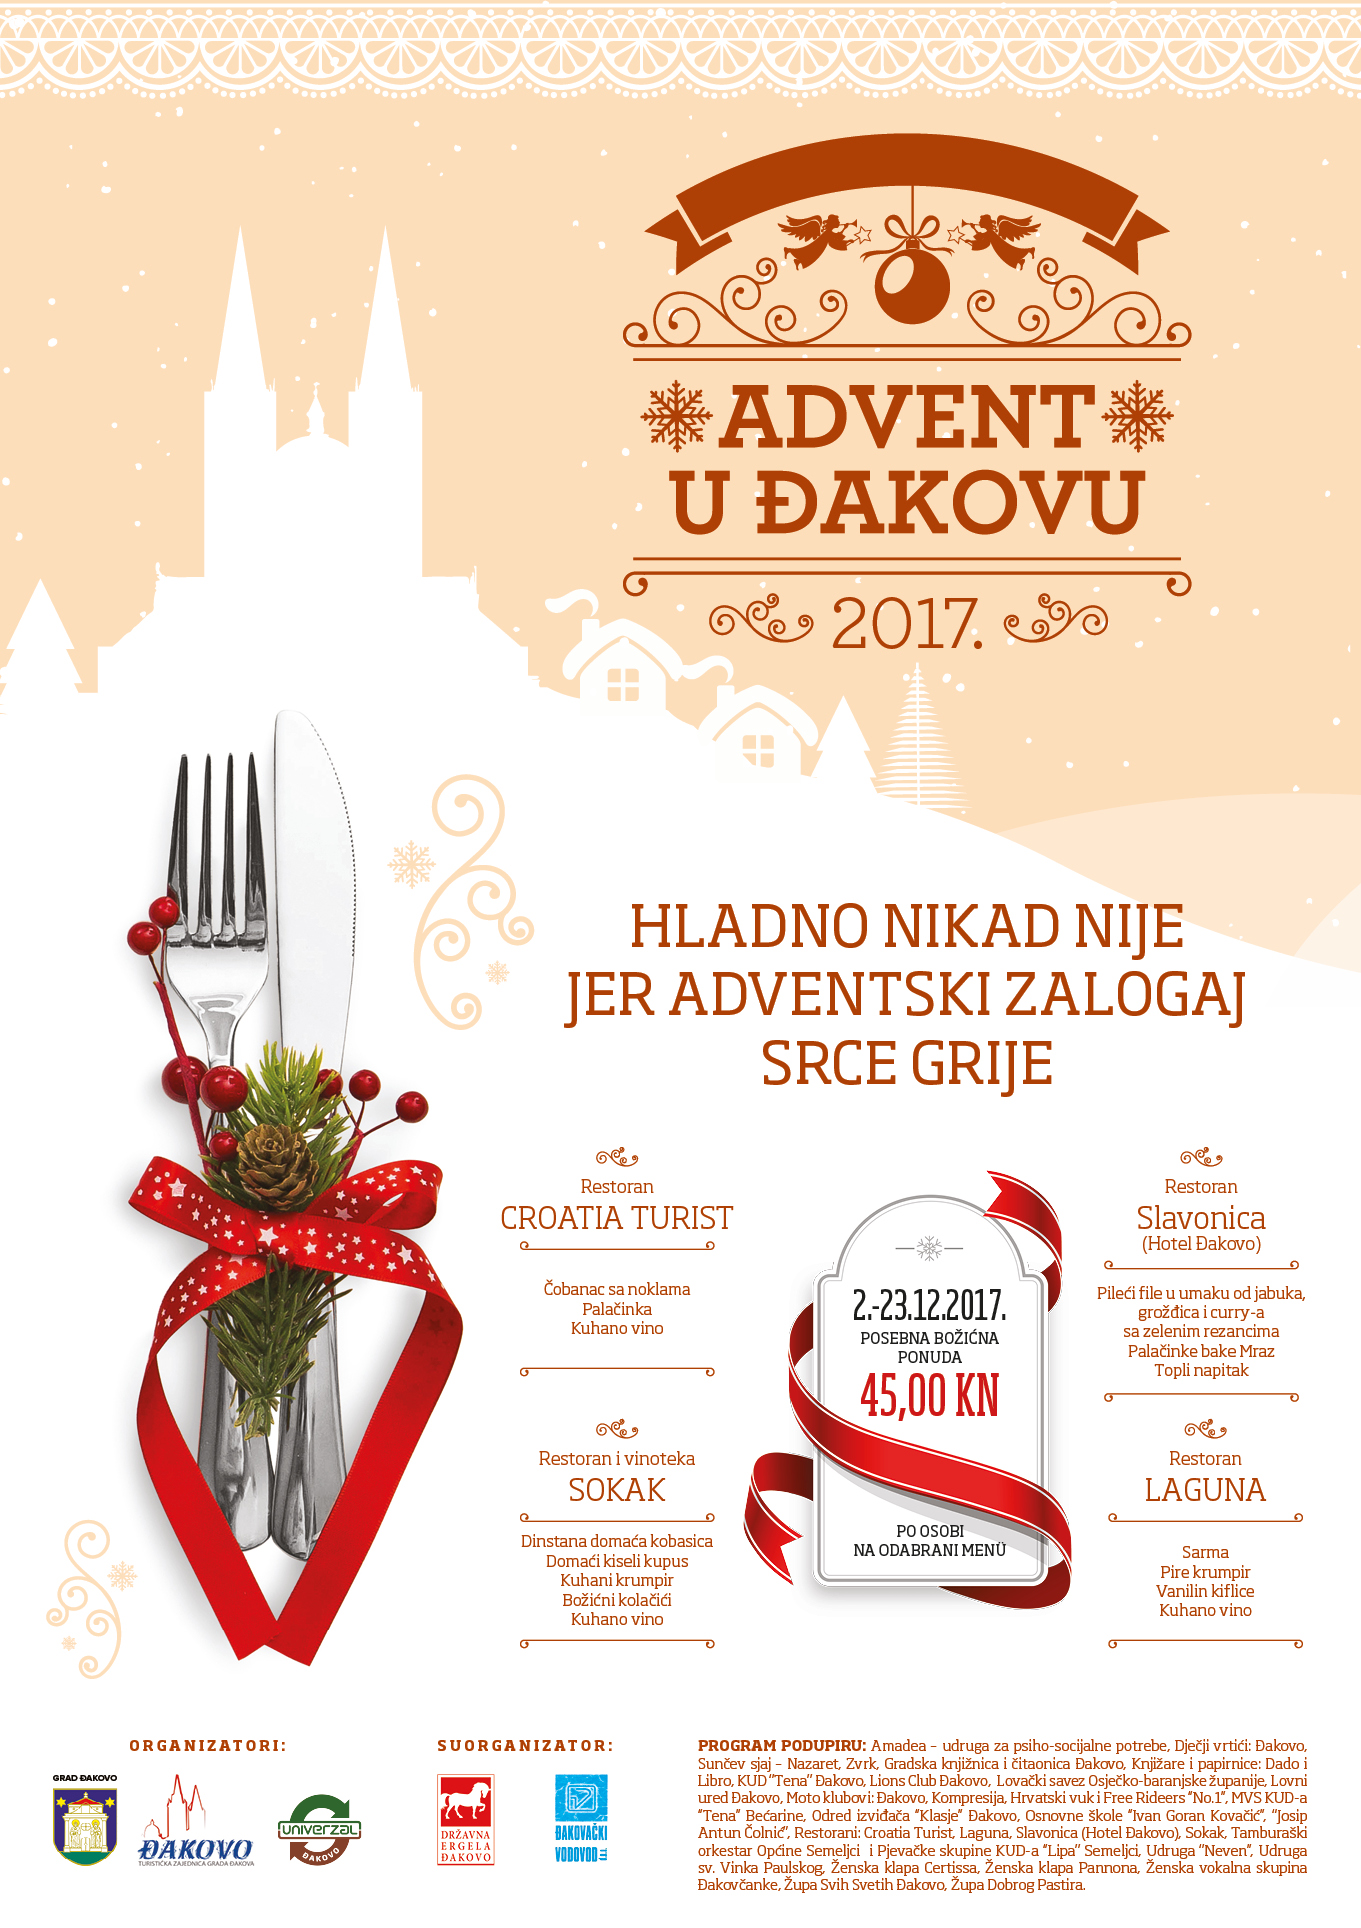 Advent u Đakovu restorani